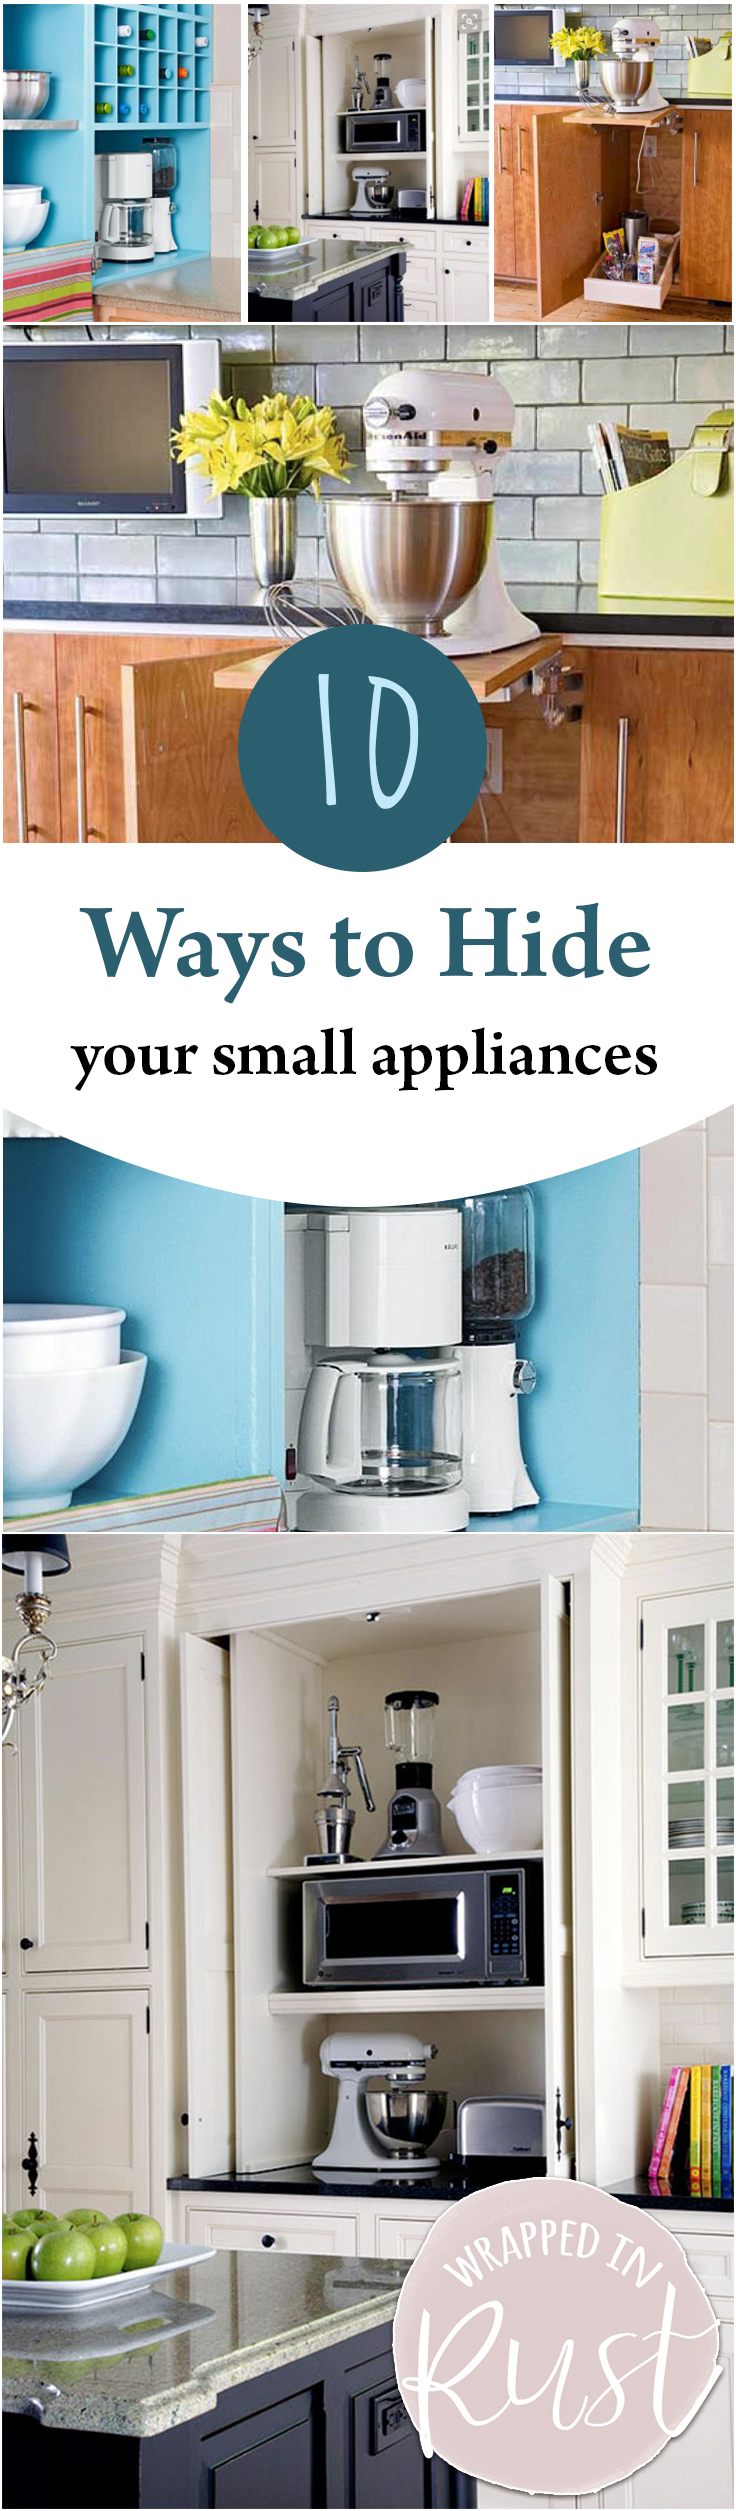 10 Ways to Hide Your Small Appliances - Wrapped in Rust